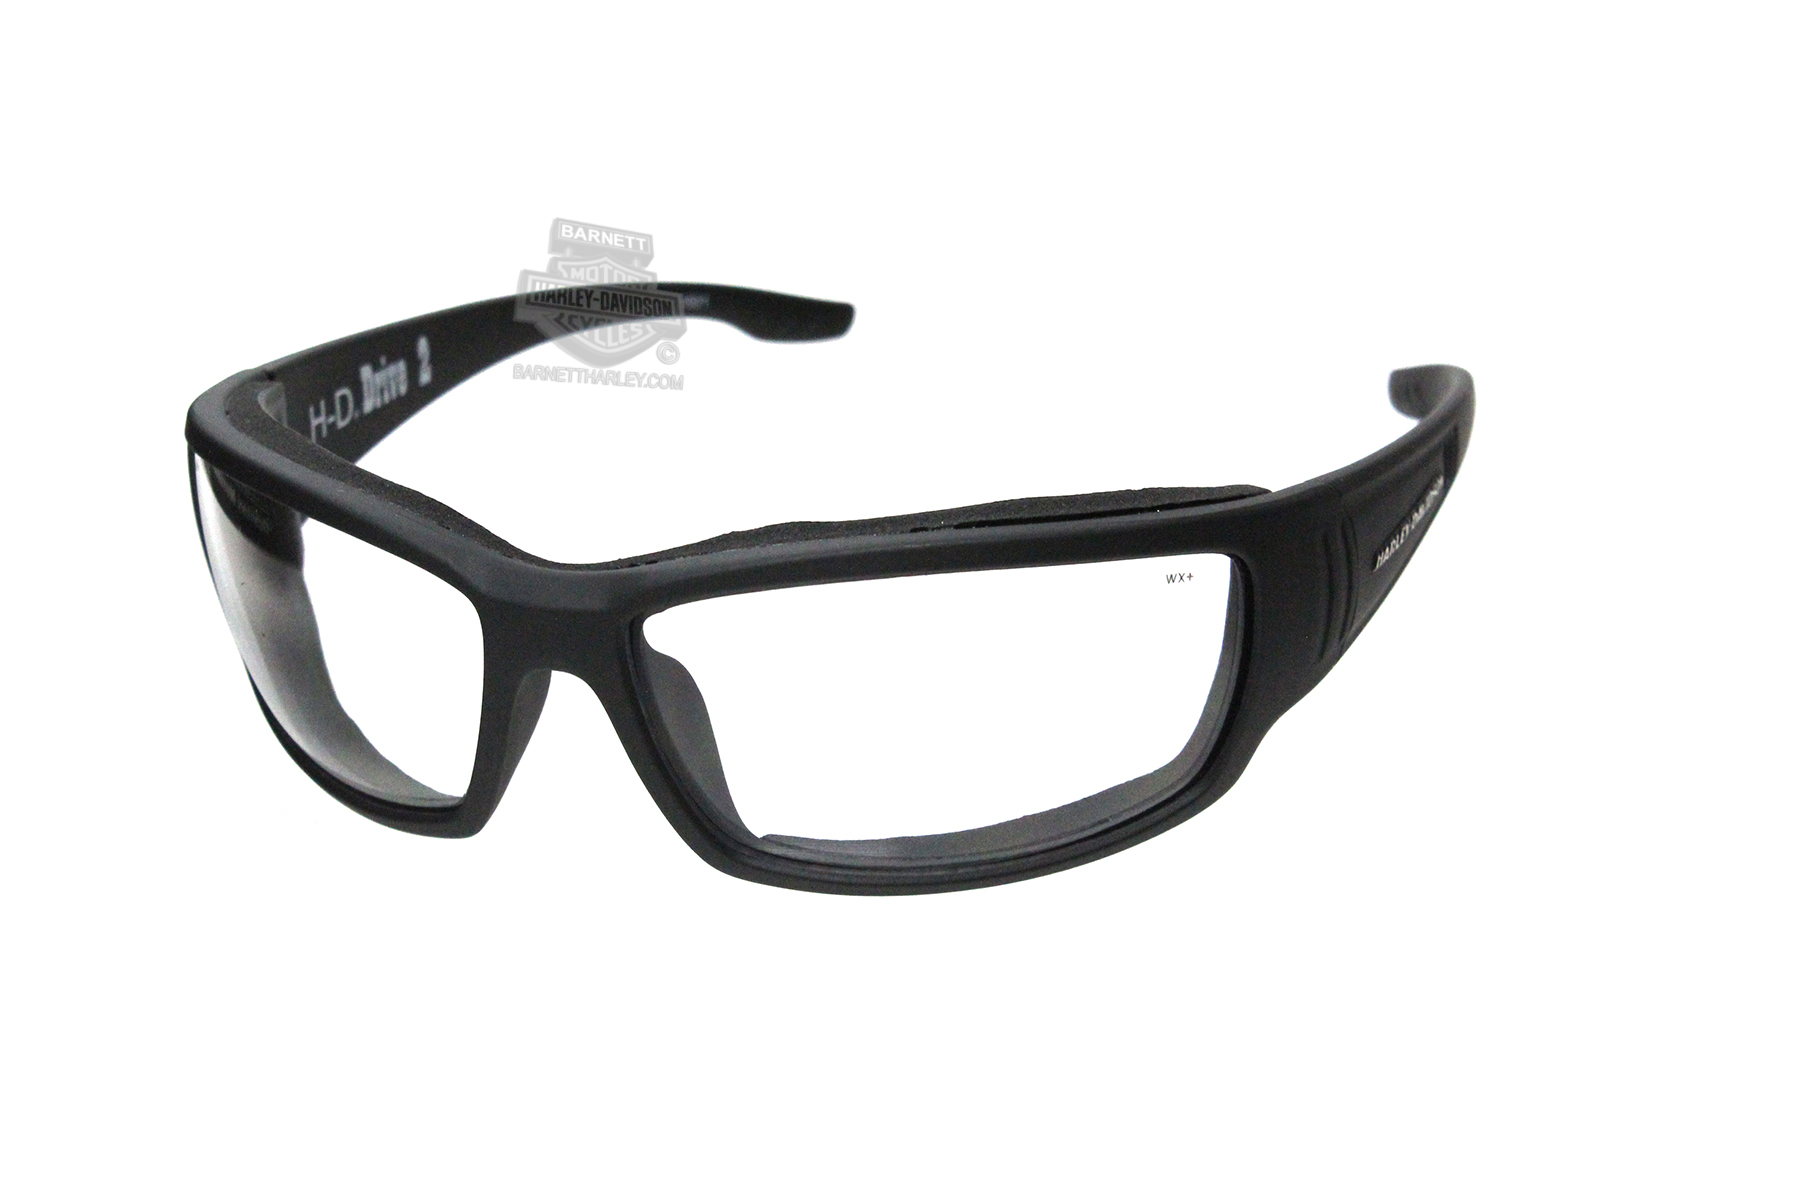 e125197f1c2f ... Eyewear Source · Replacement Lenses for Wiley X Jake Revant Optics  Source · Harley Davidson HD Drive 2 Clear lens in a Matte Black Frame